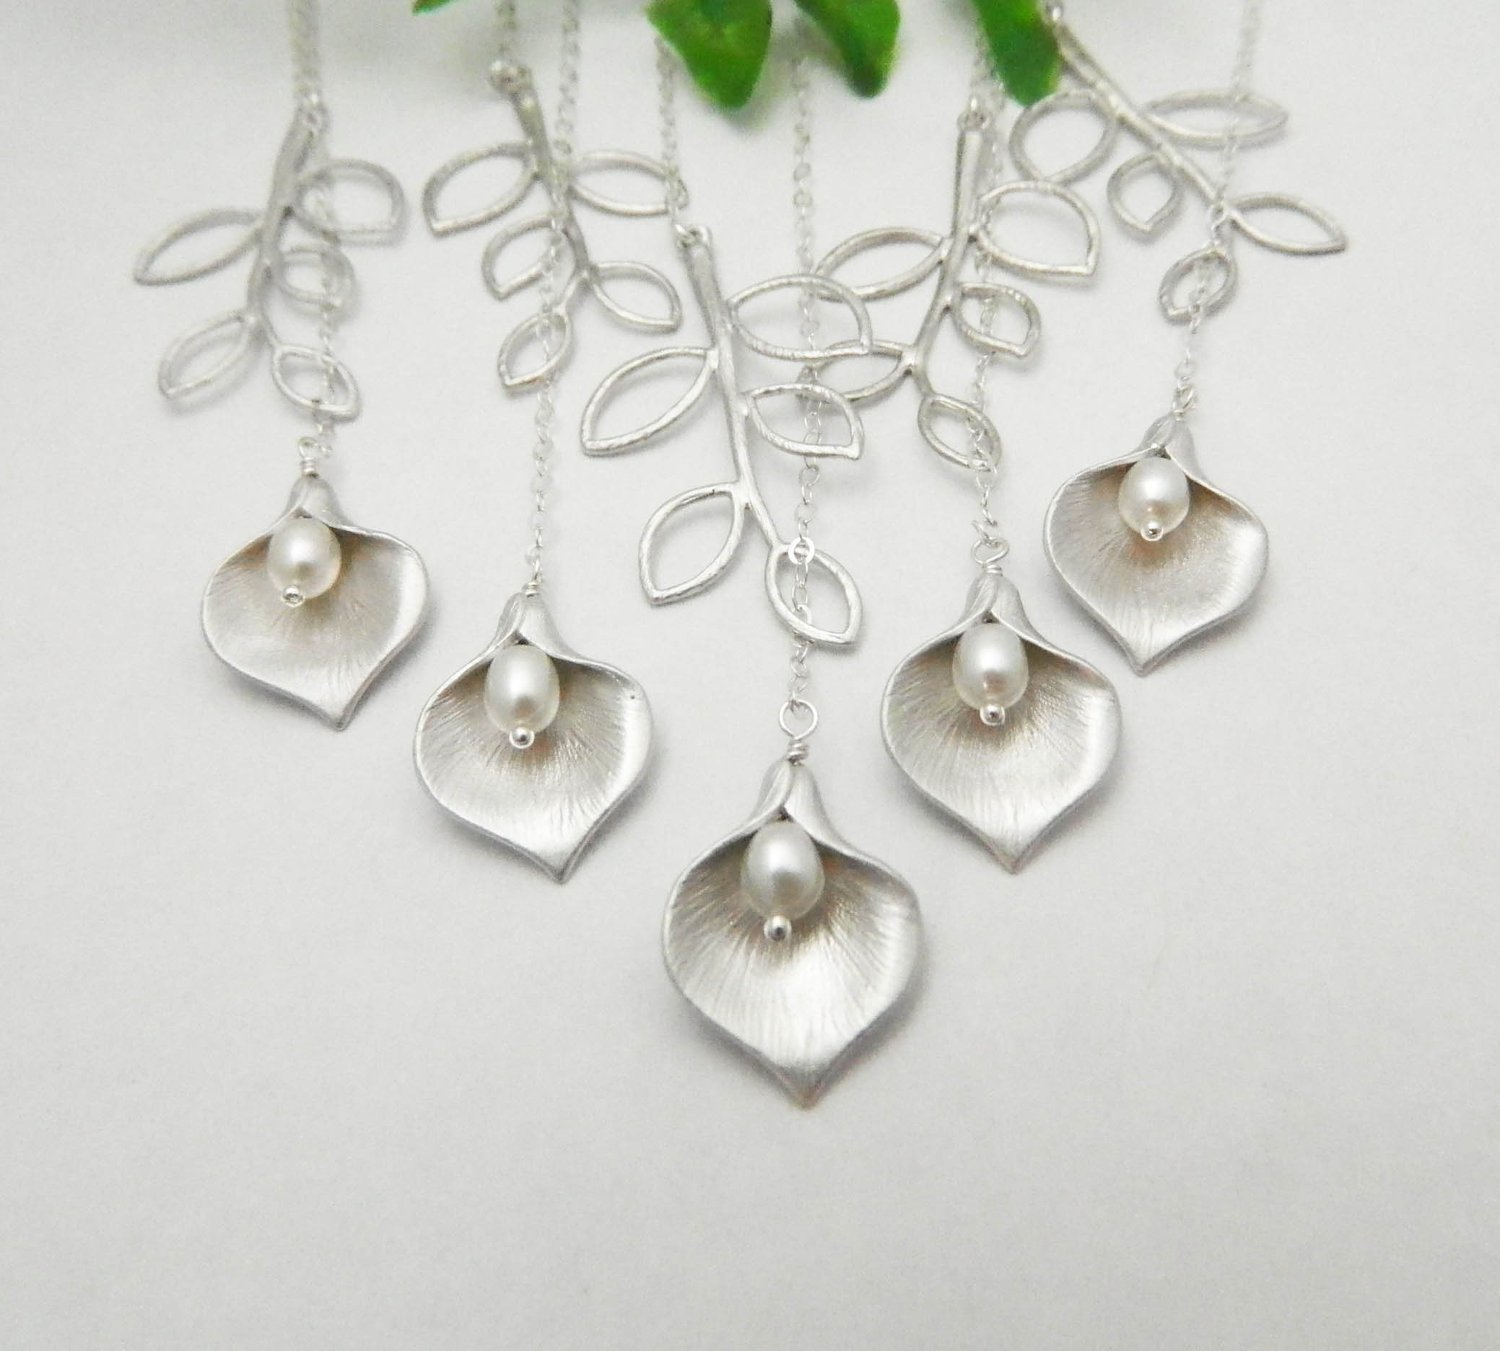 Bridesmaid Gifts, Set of FIVE, Calla Lily Necklace, STERLING SILVER Lariat Necklace, Bridesmaid Jewelry, Bridesmaid Necklace, Wedding Necklace